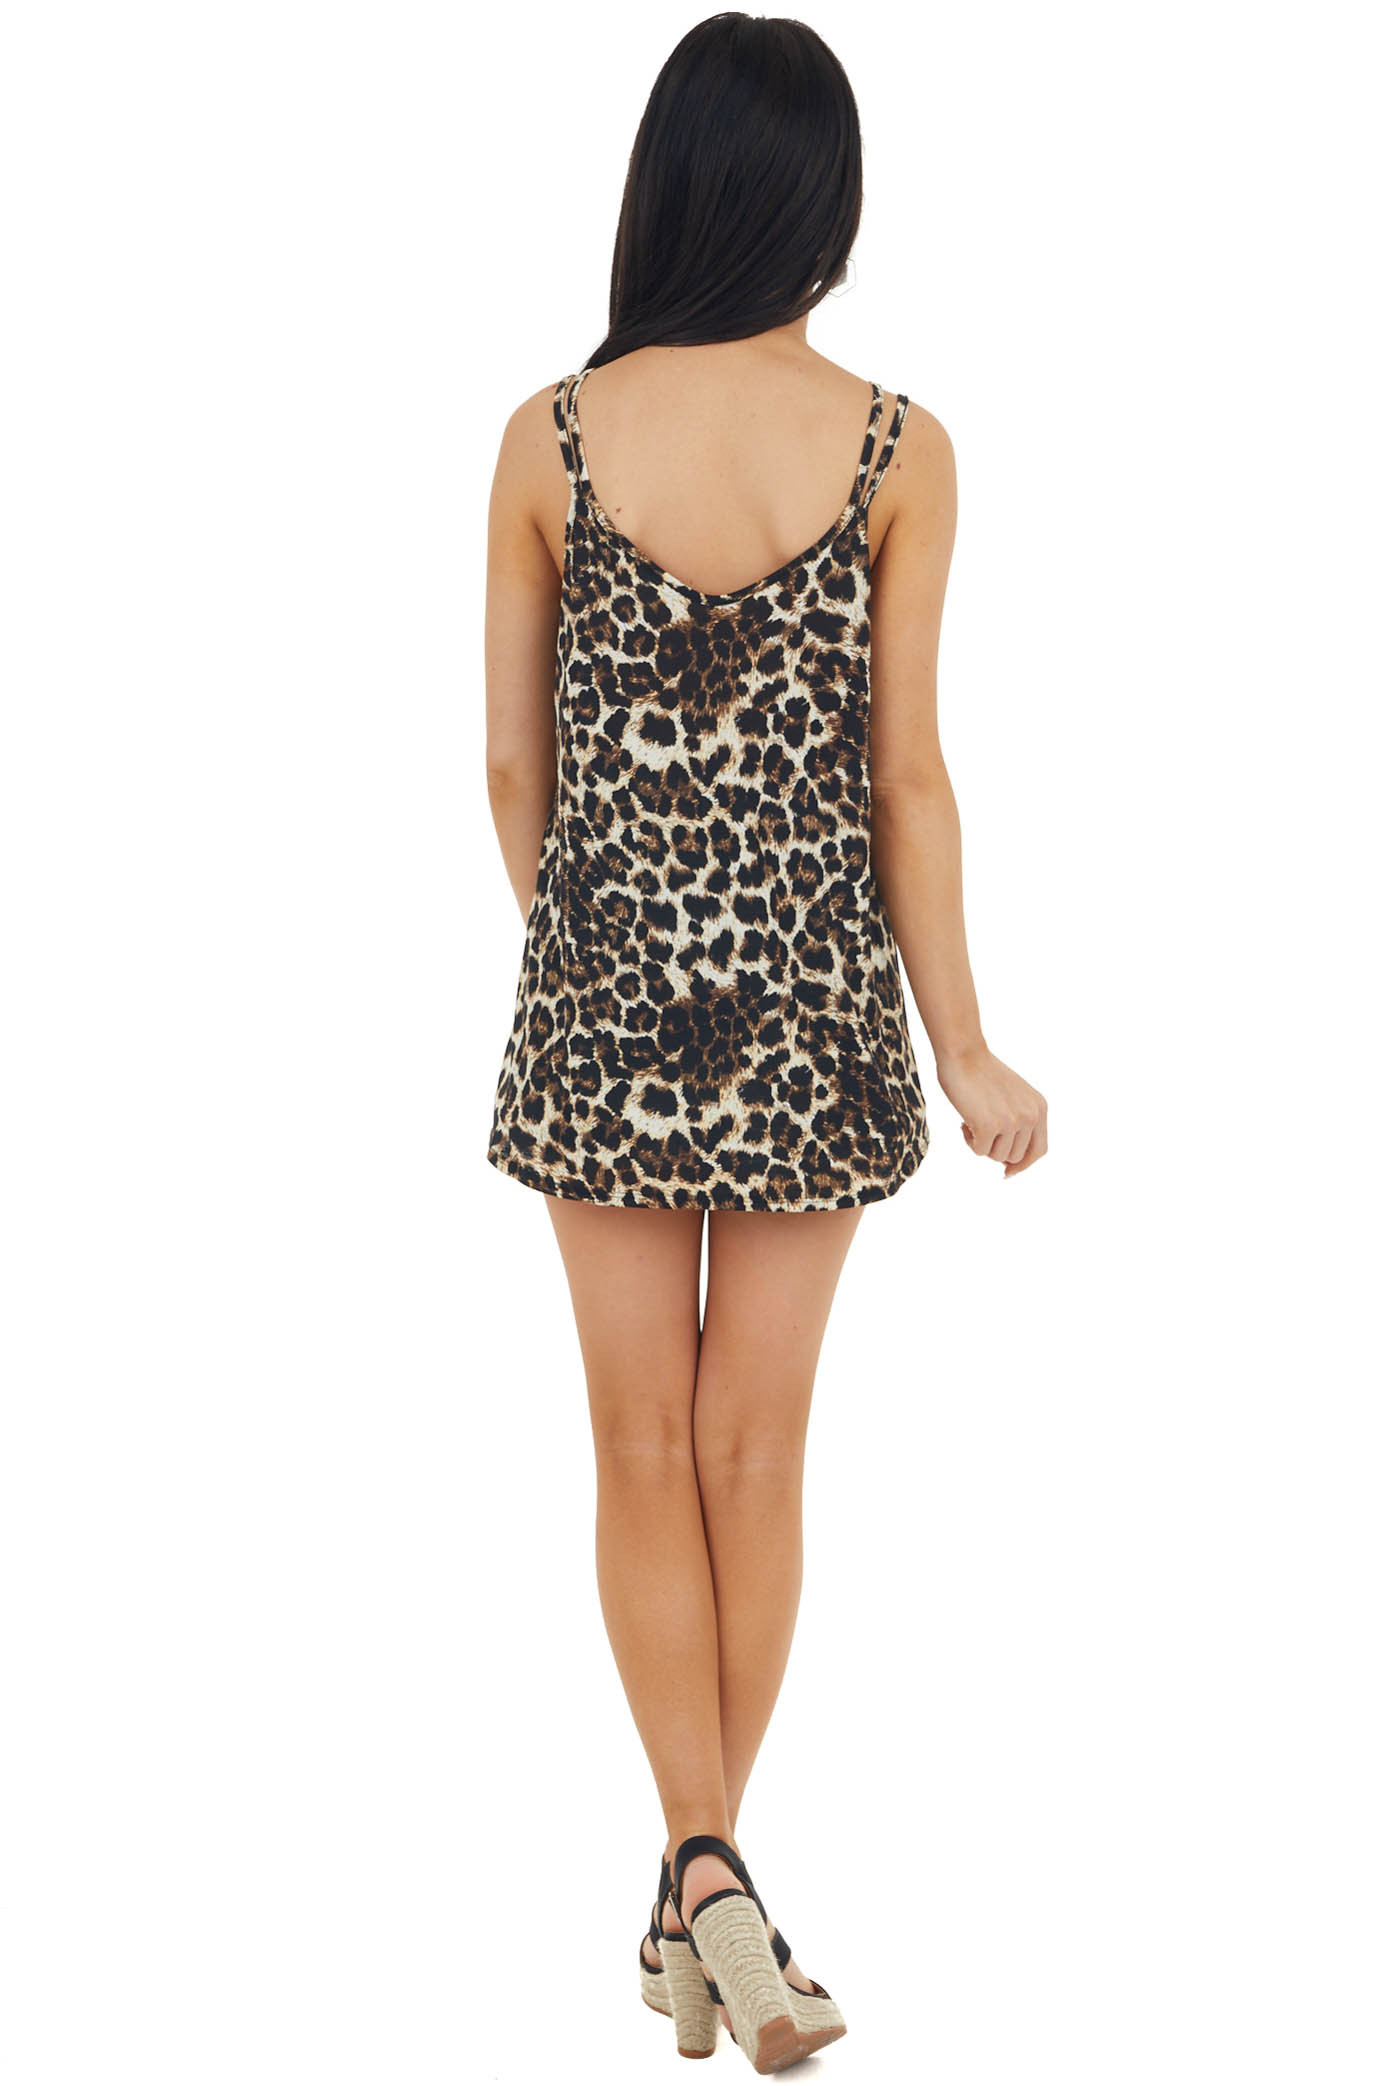 Black Leopard Print Sleeveless Knit Top with Strappy Detail